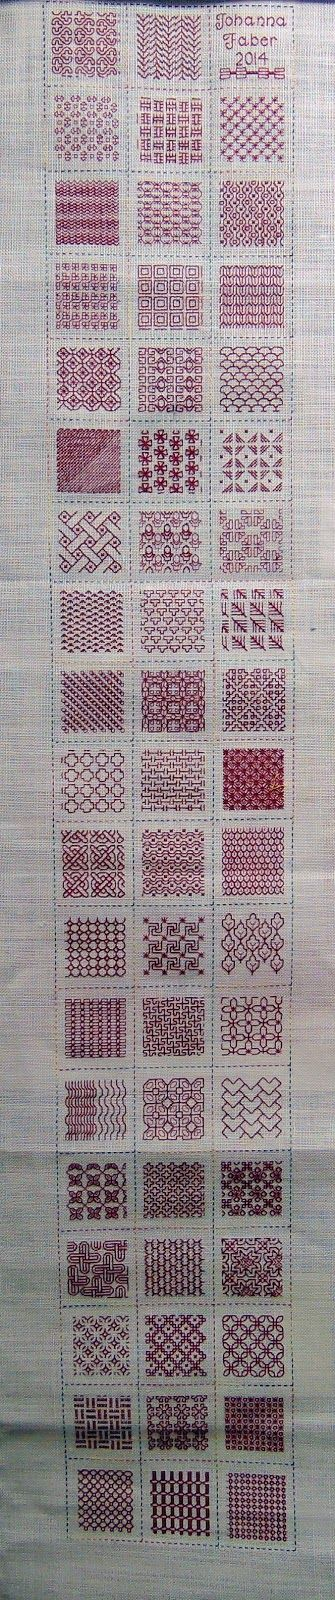 Lovely Stitch Sampler